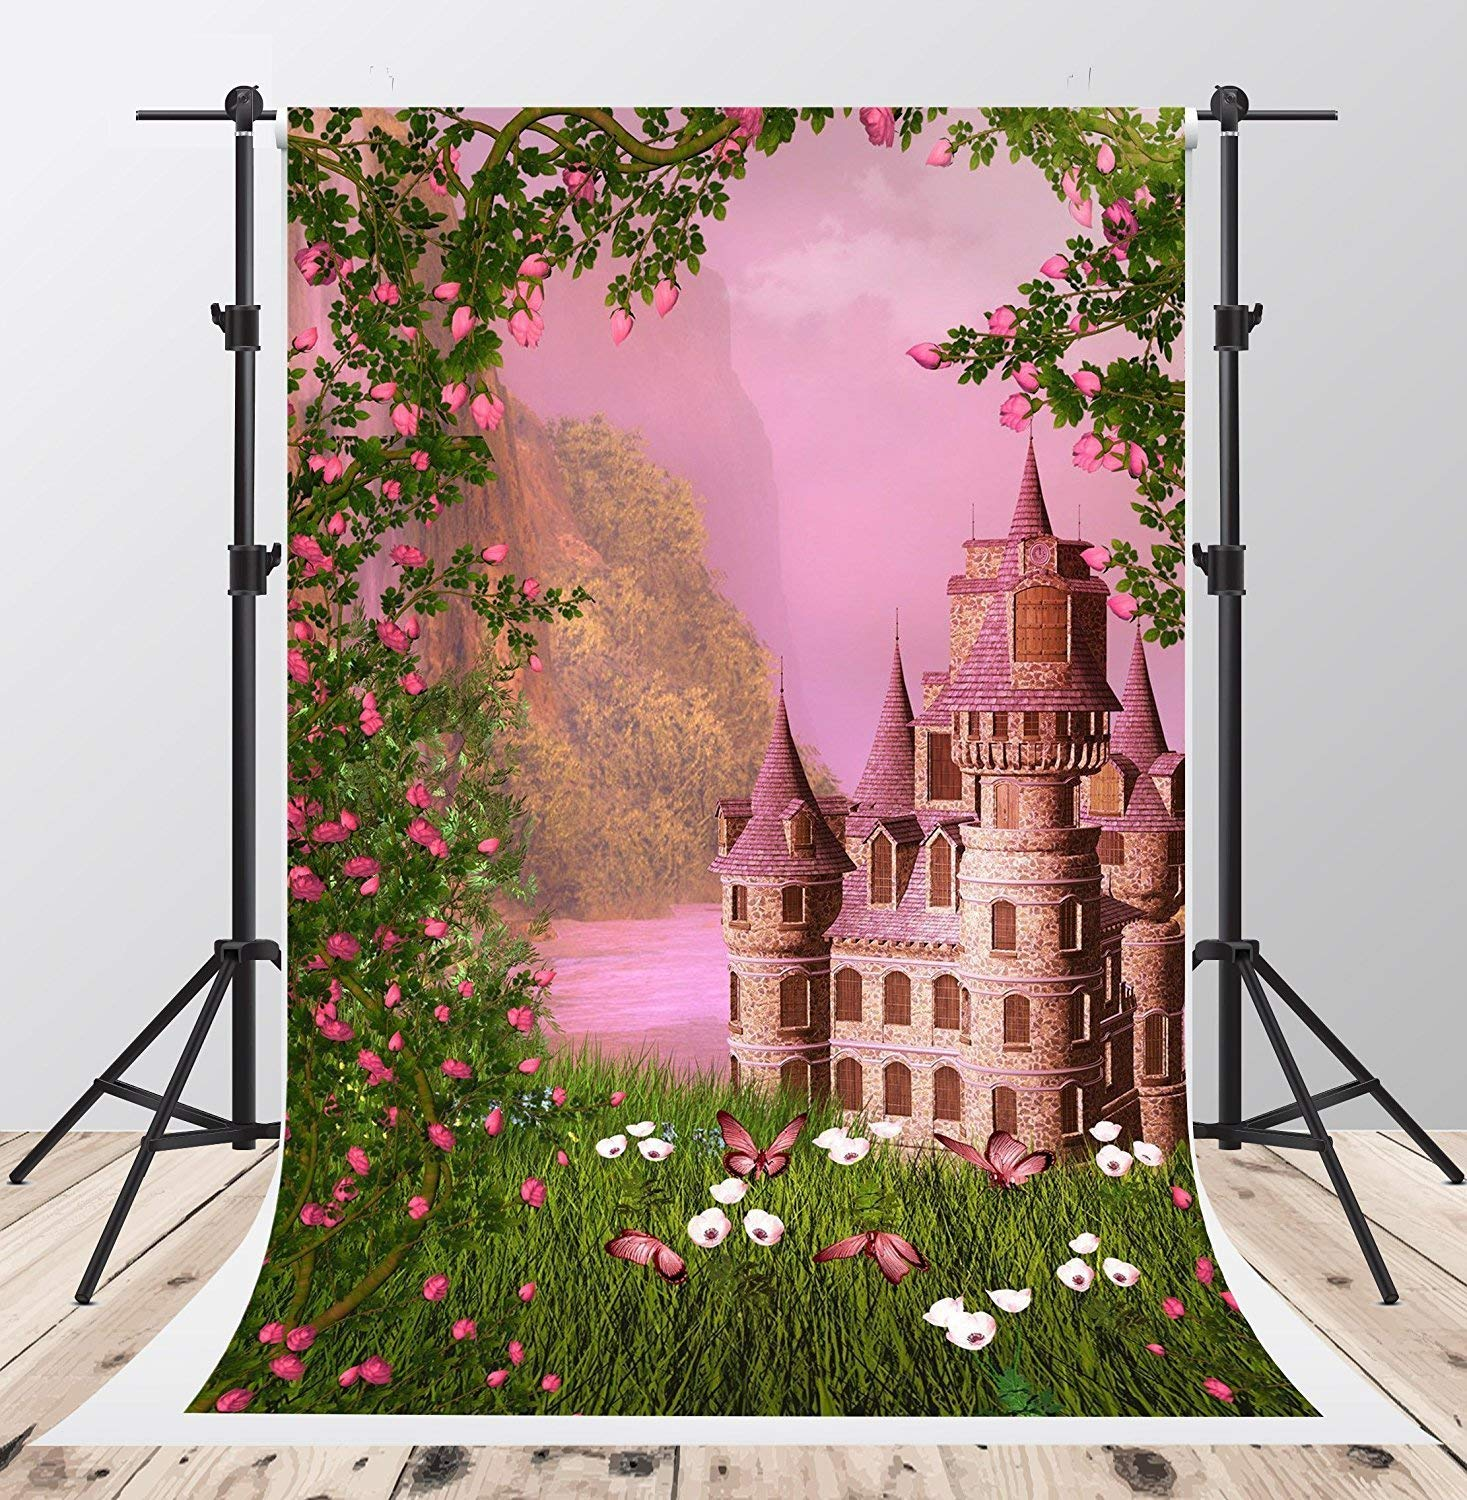 Kate 5x7ft Pink Photography Backgrounds 5x7ft Green Grass Scenic Photo Backdrop White Flowers Studio Castle Backgrounds